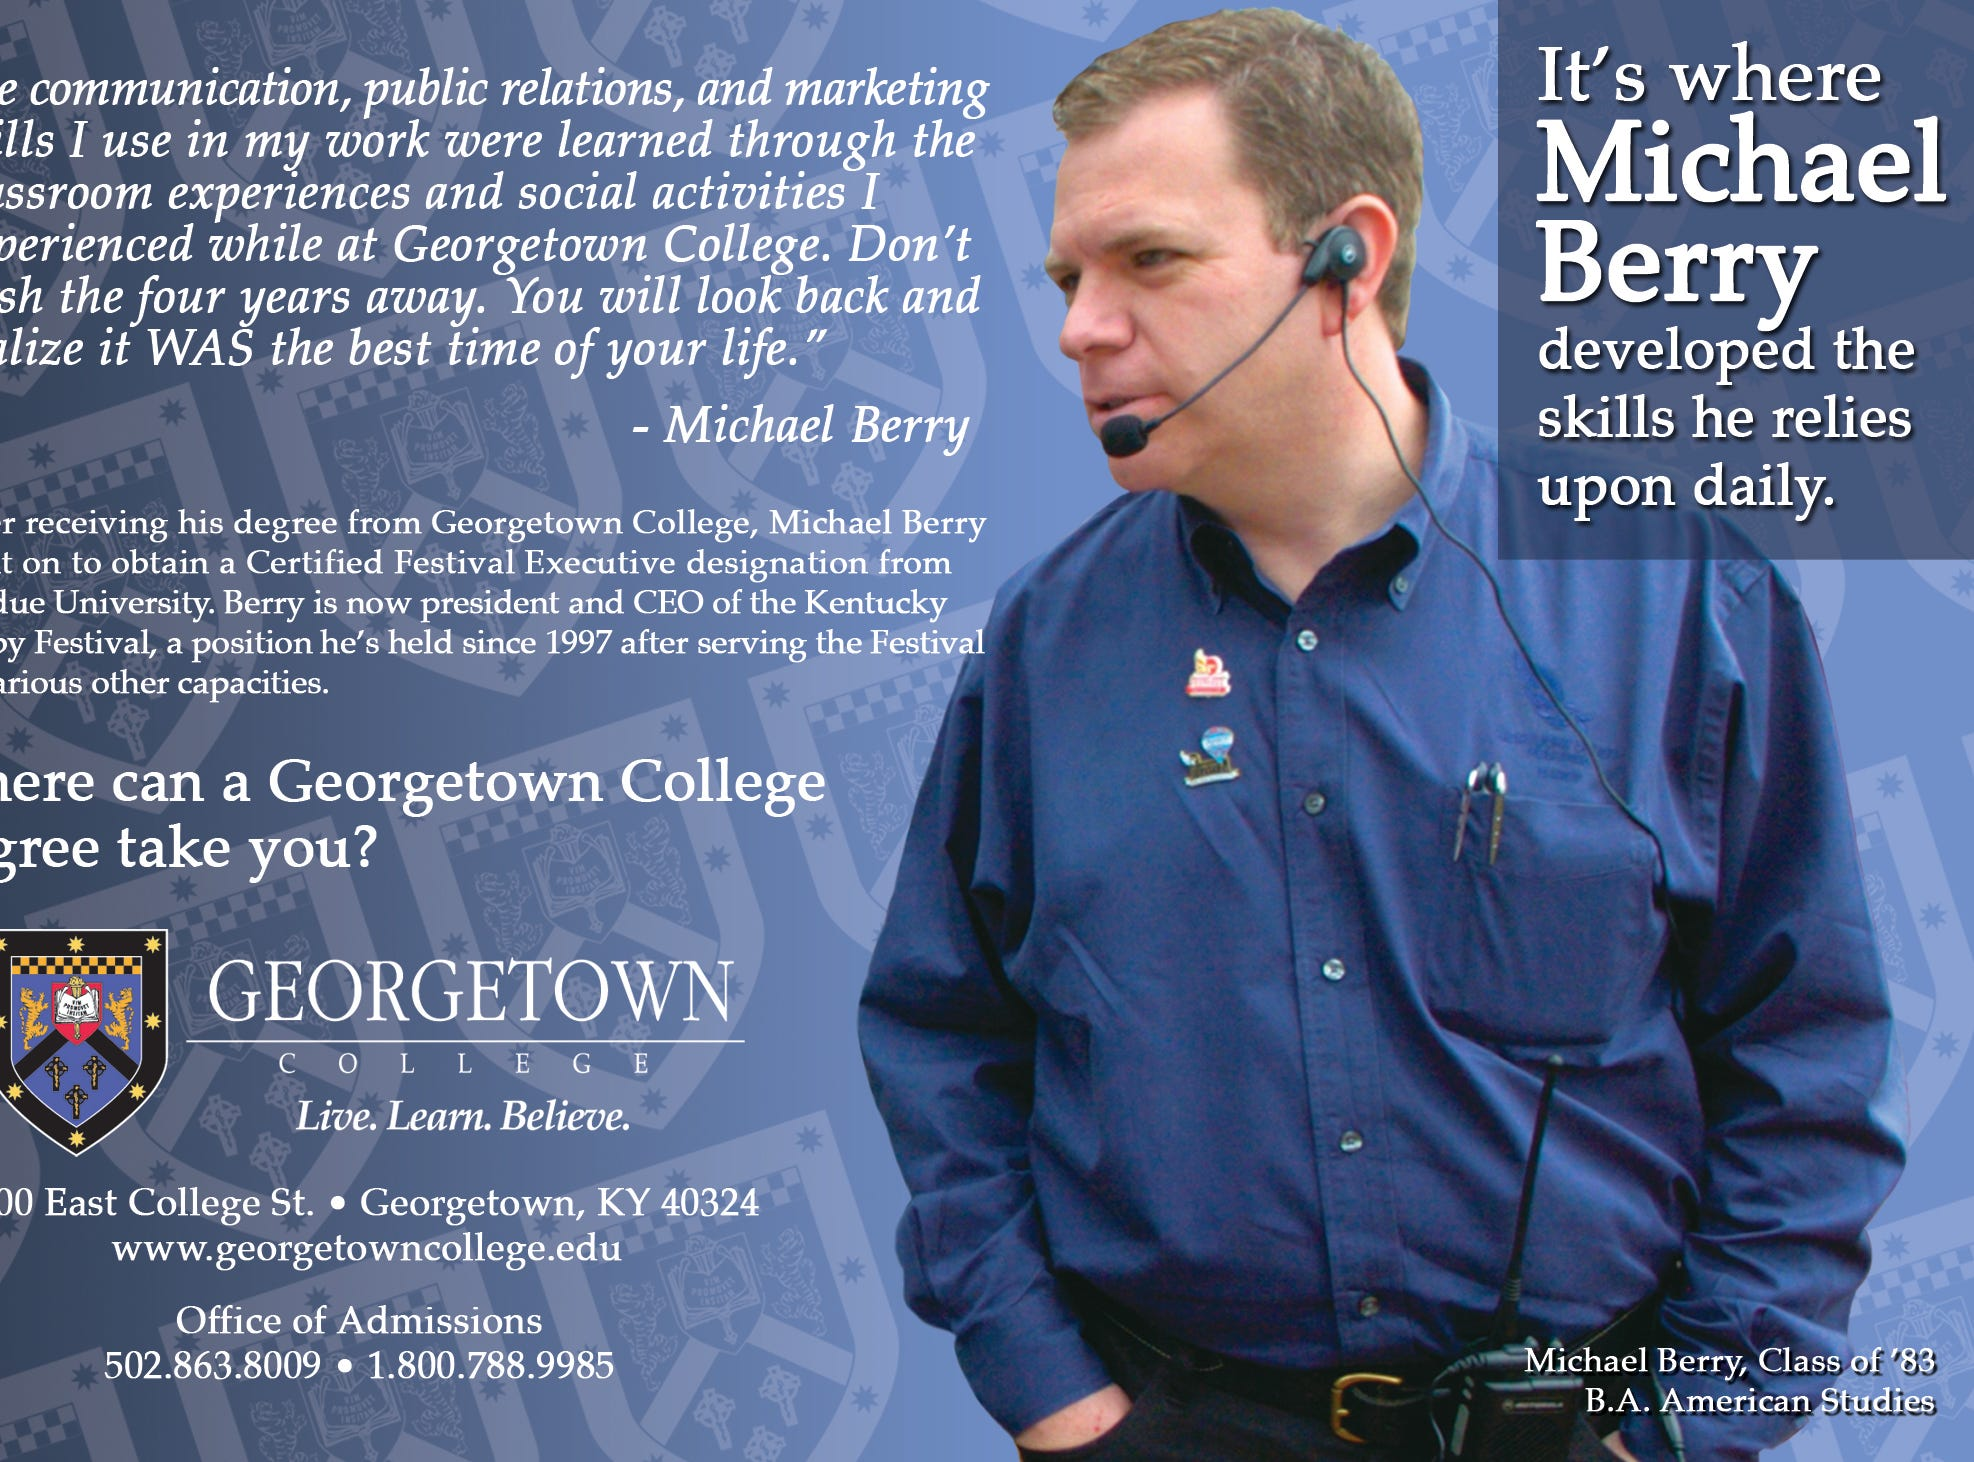 Mike Berry featured in an ad for Georgetown College.